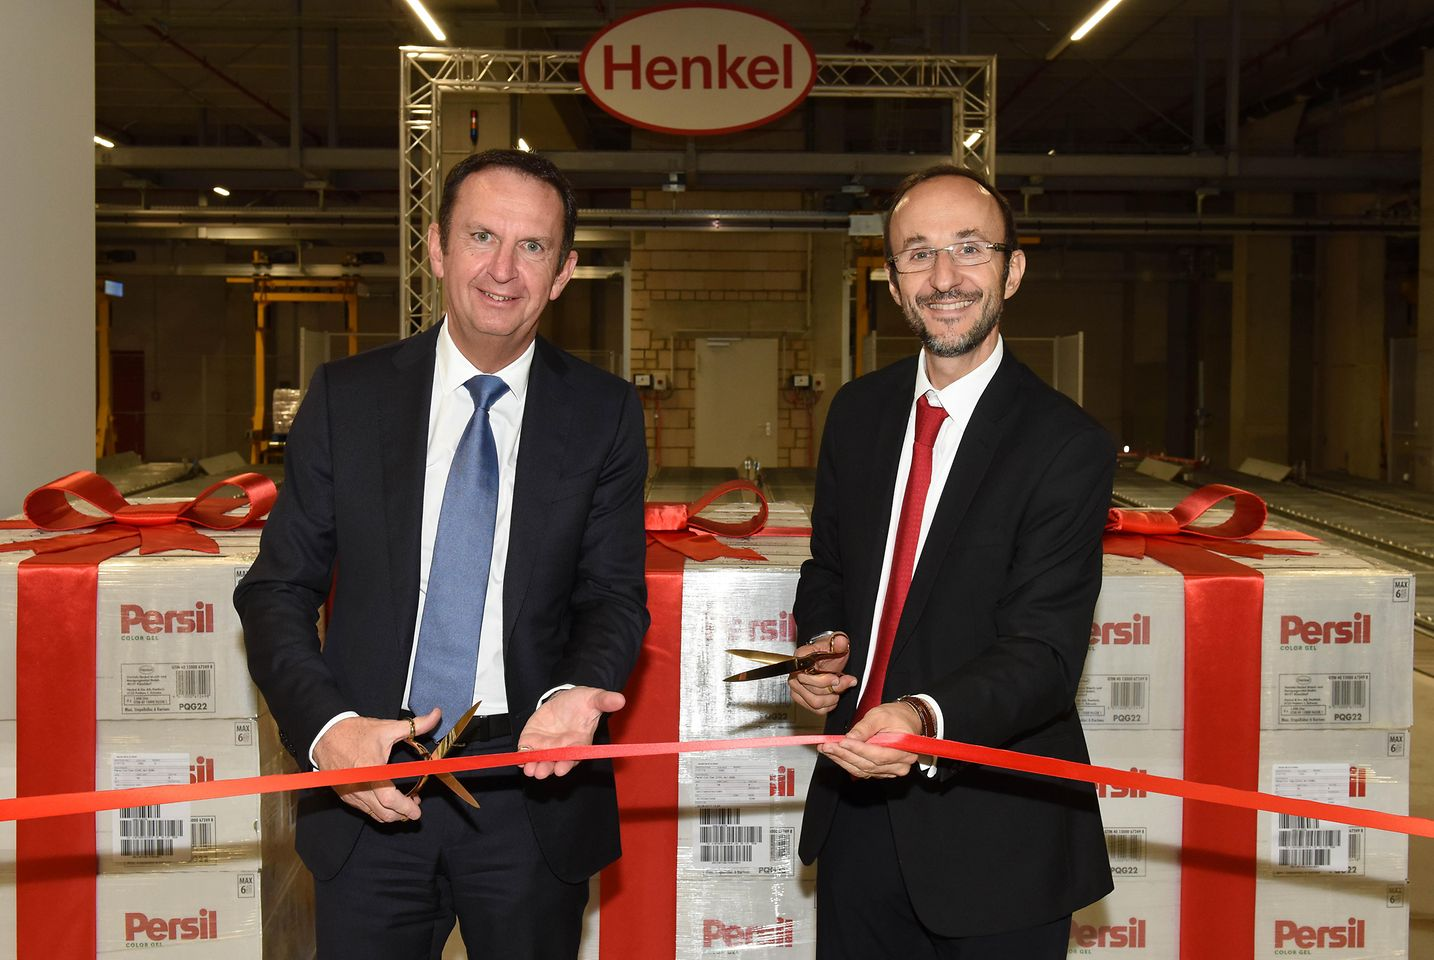 Henkel CEO Hans Van Bylen and Bruno Piacenza, Executive Vice President Laundry & Home Care, at the opening (from left)